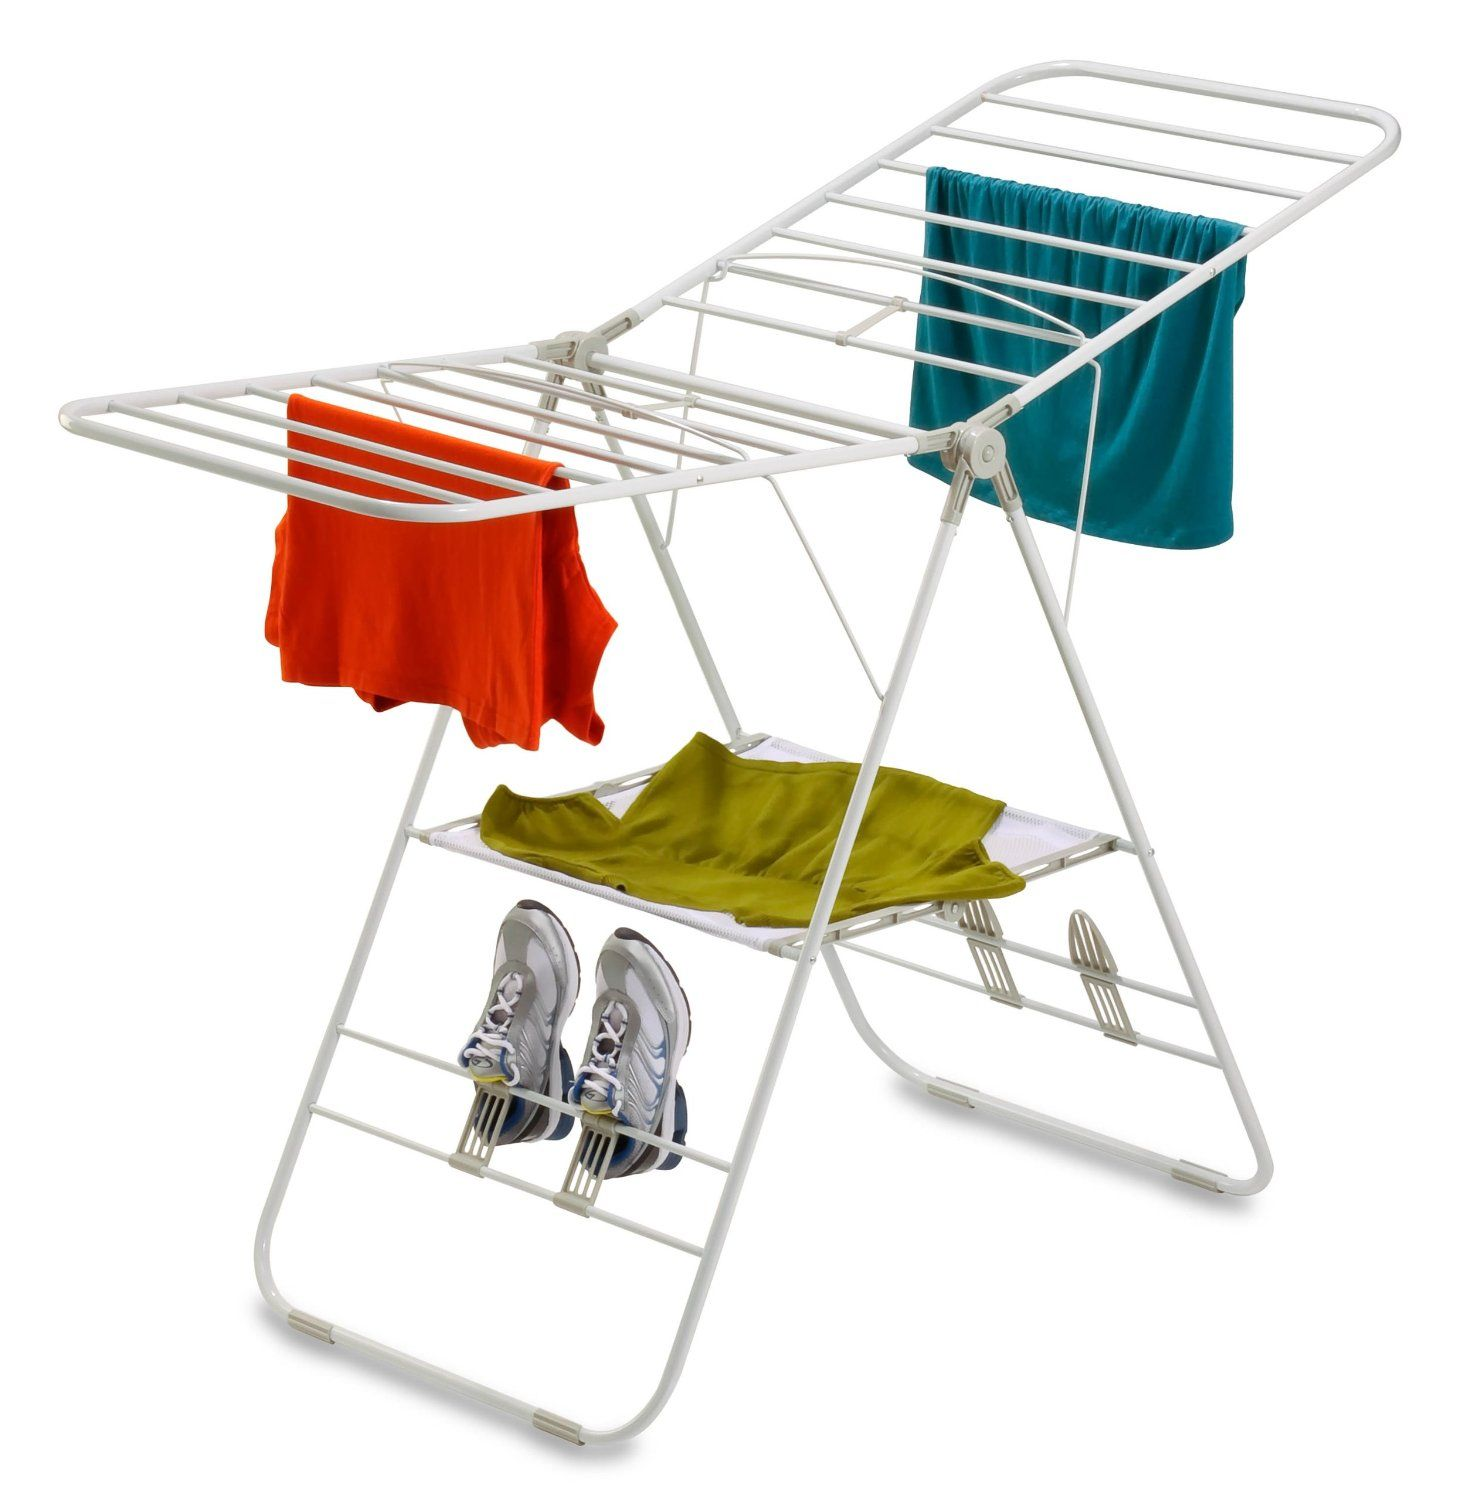 Amazon Drying Rack Amazon Most Popular  Honeycando Drying Rack  Spring Cleaning